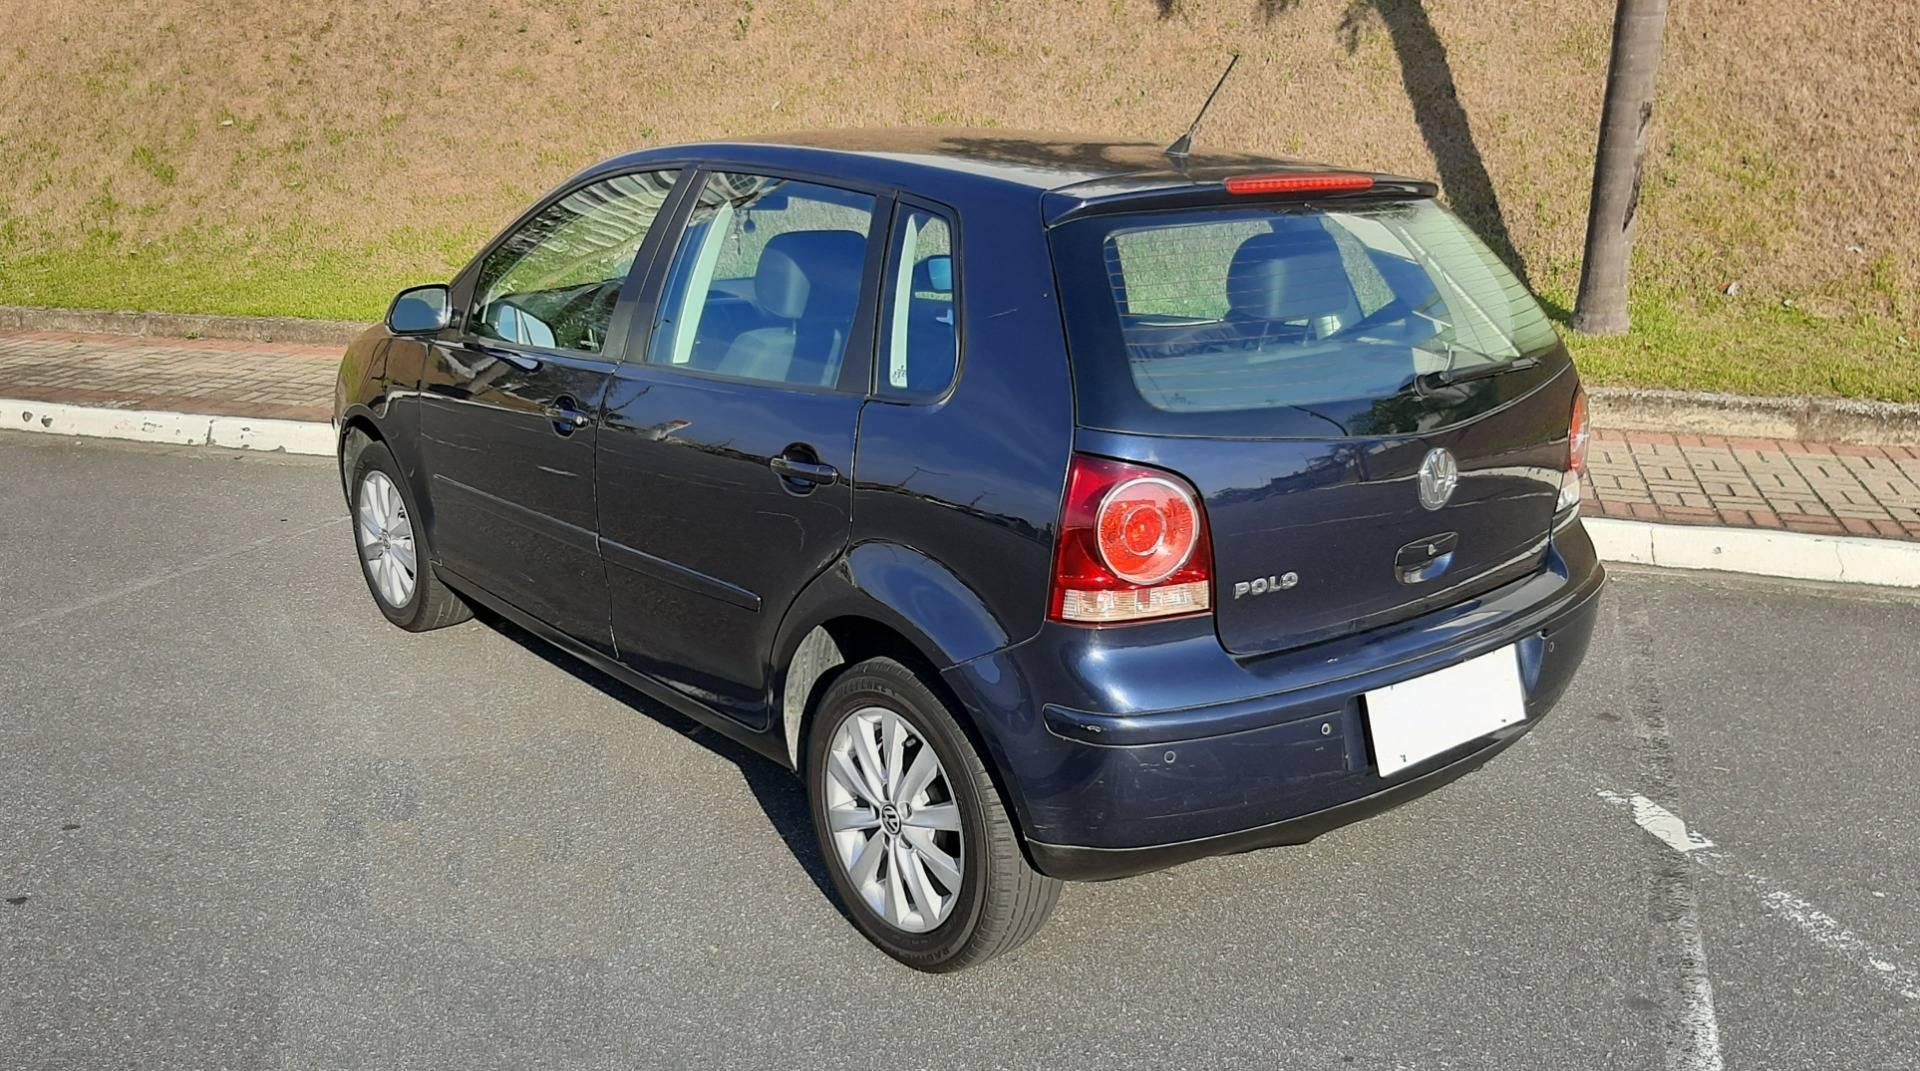 VOLKSWAGEN Polo Hatch 1.6 4P FLEX, Foto 4